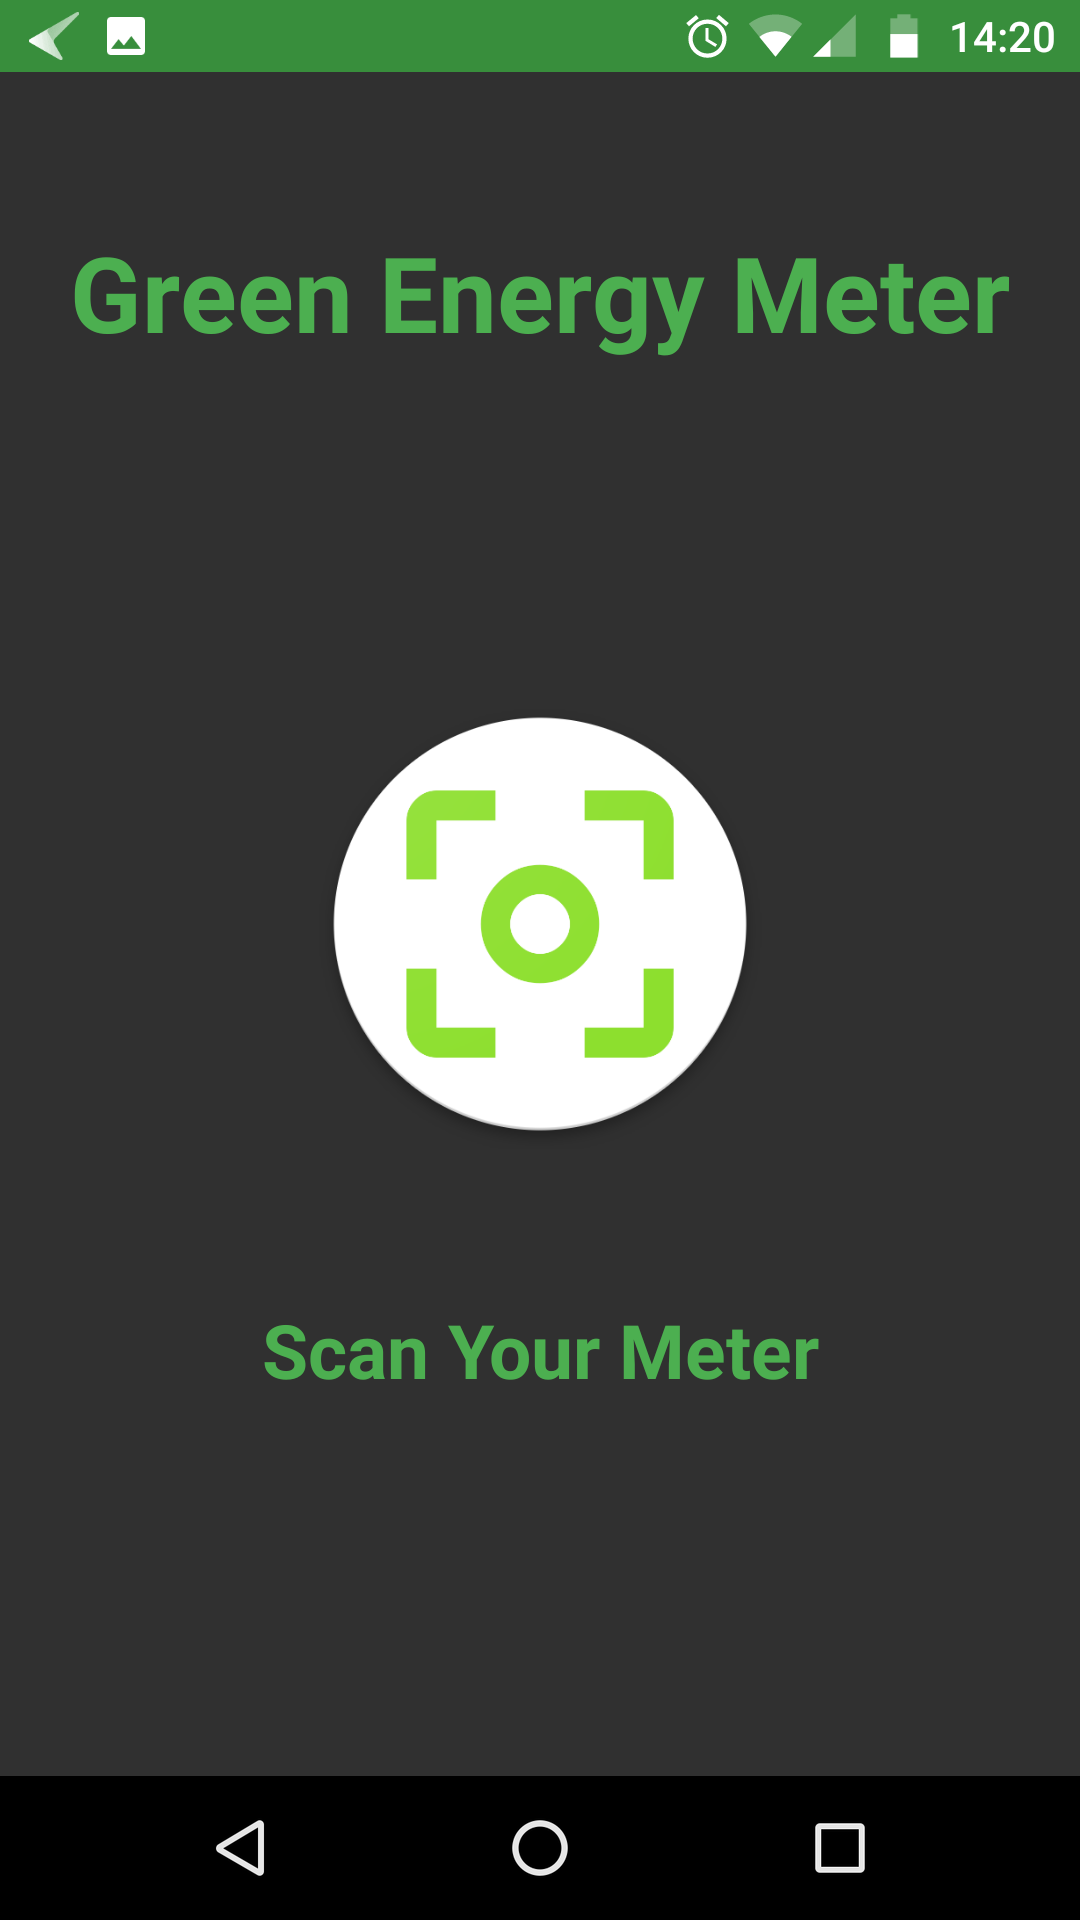 Automatic Utility Meter Reading App for Android - Tesseract OCR